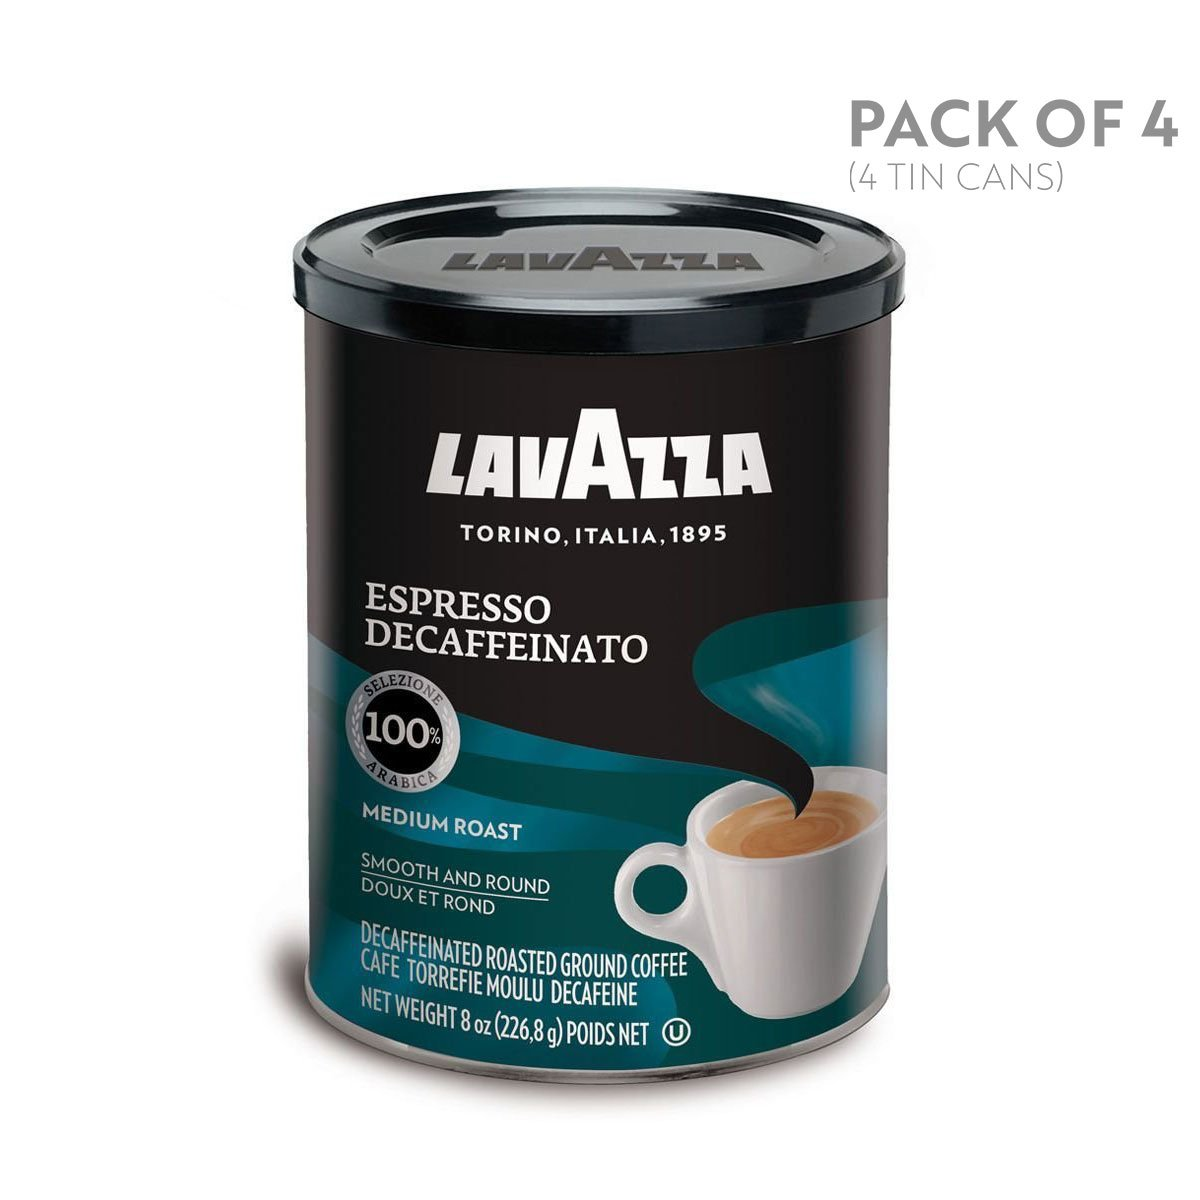 Lavazza Espresso Decaffeinato Ground Coffee Blend, Decaffeinated Medium Roast, 8-Ounce Cans (Pack of 4) by Lavazza (Image #1)